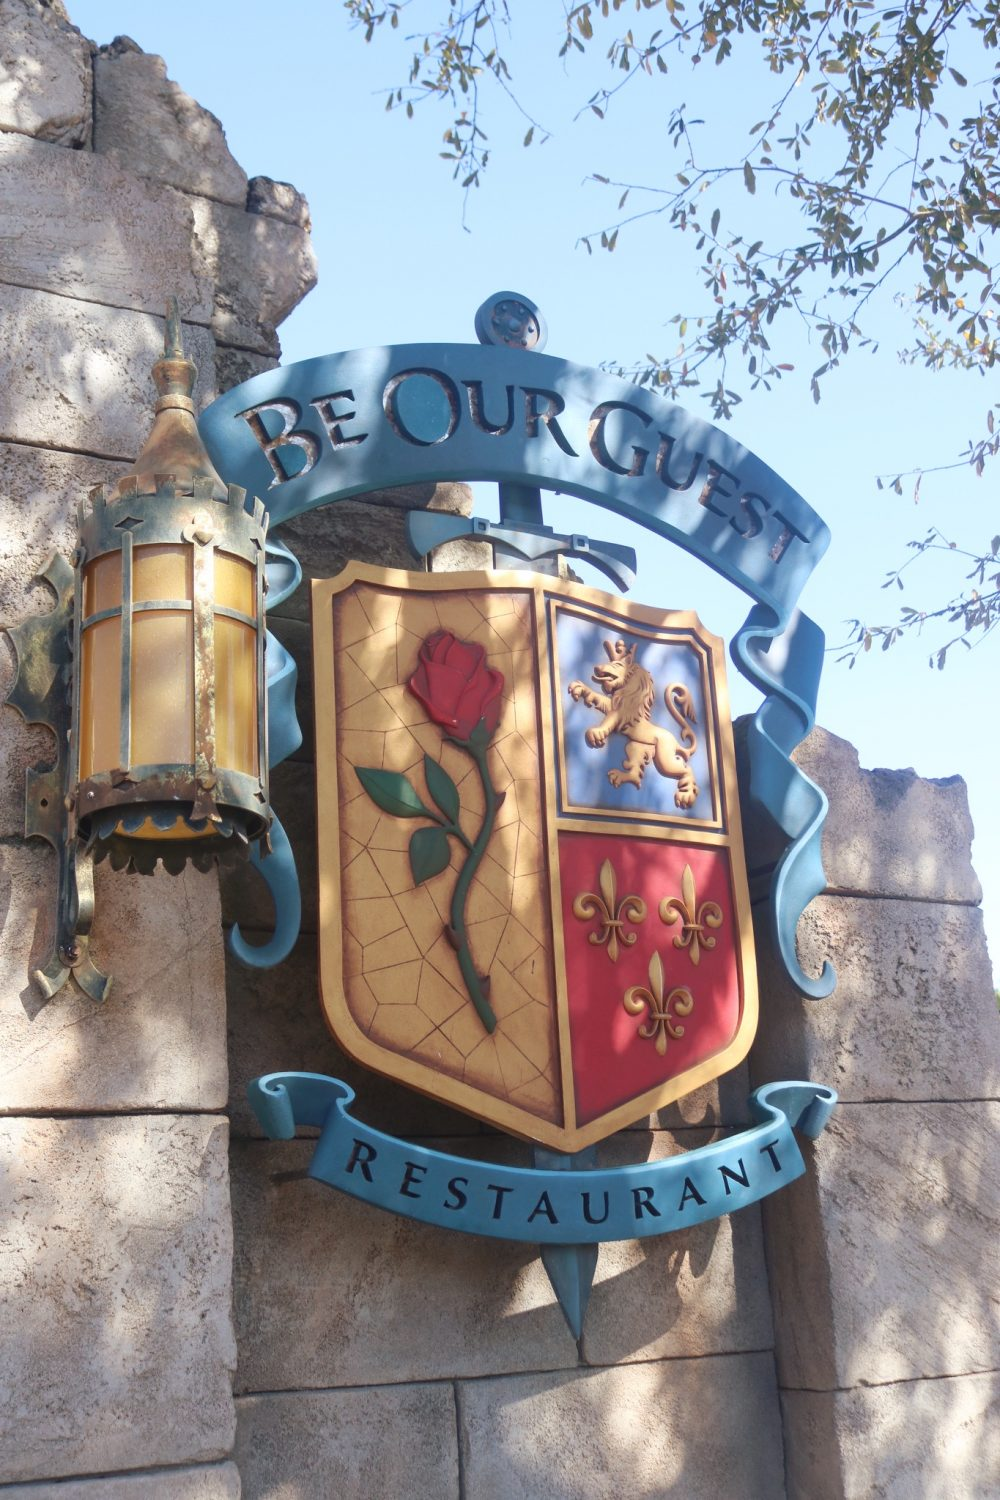 Beauty and the Beast Restaurant Be Our Guest Restaurant